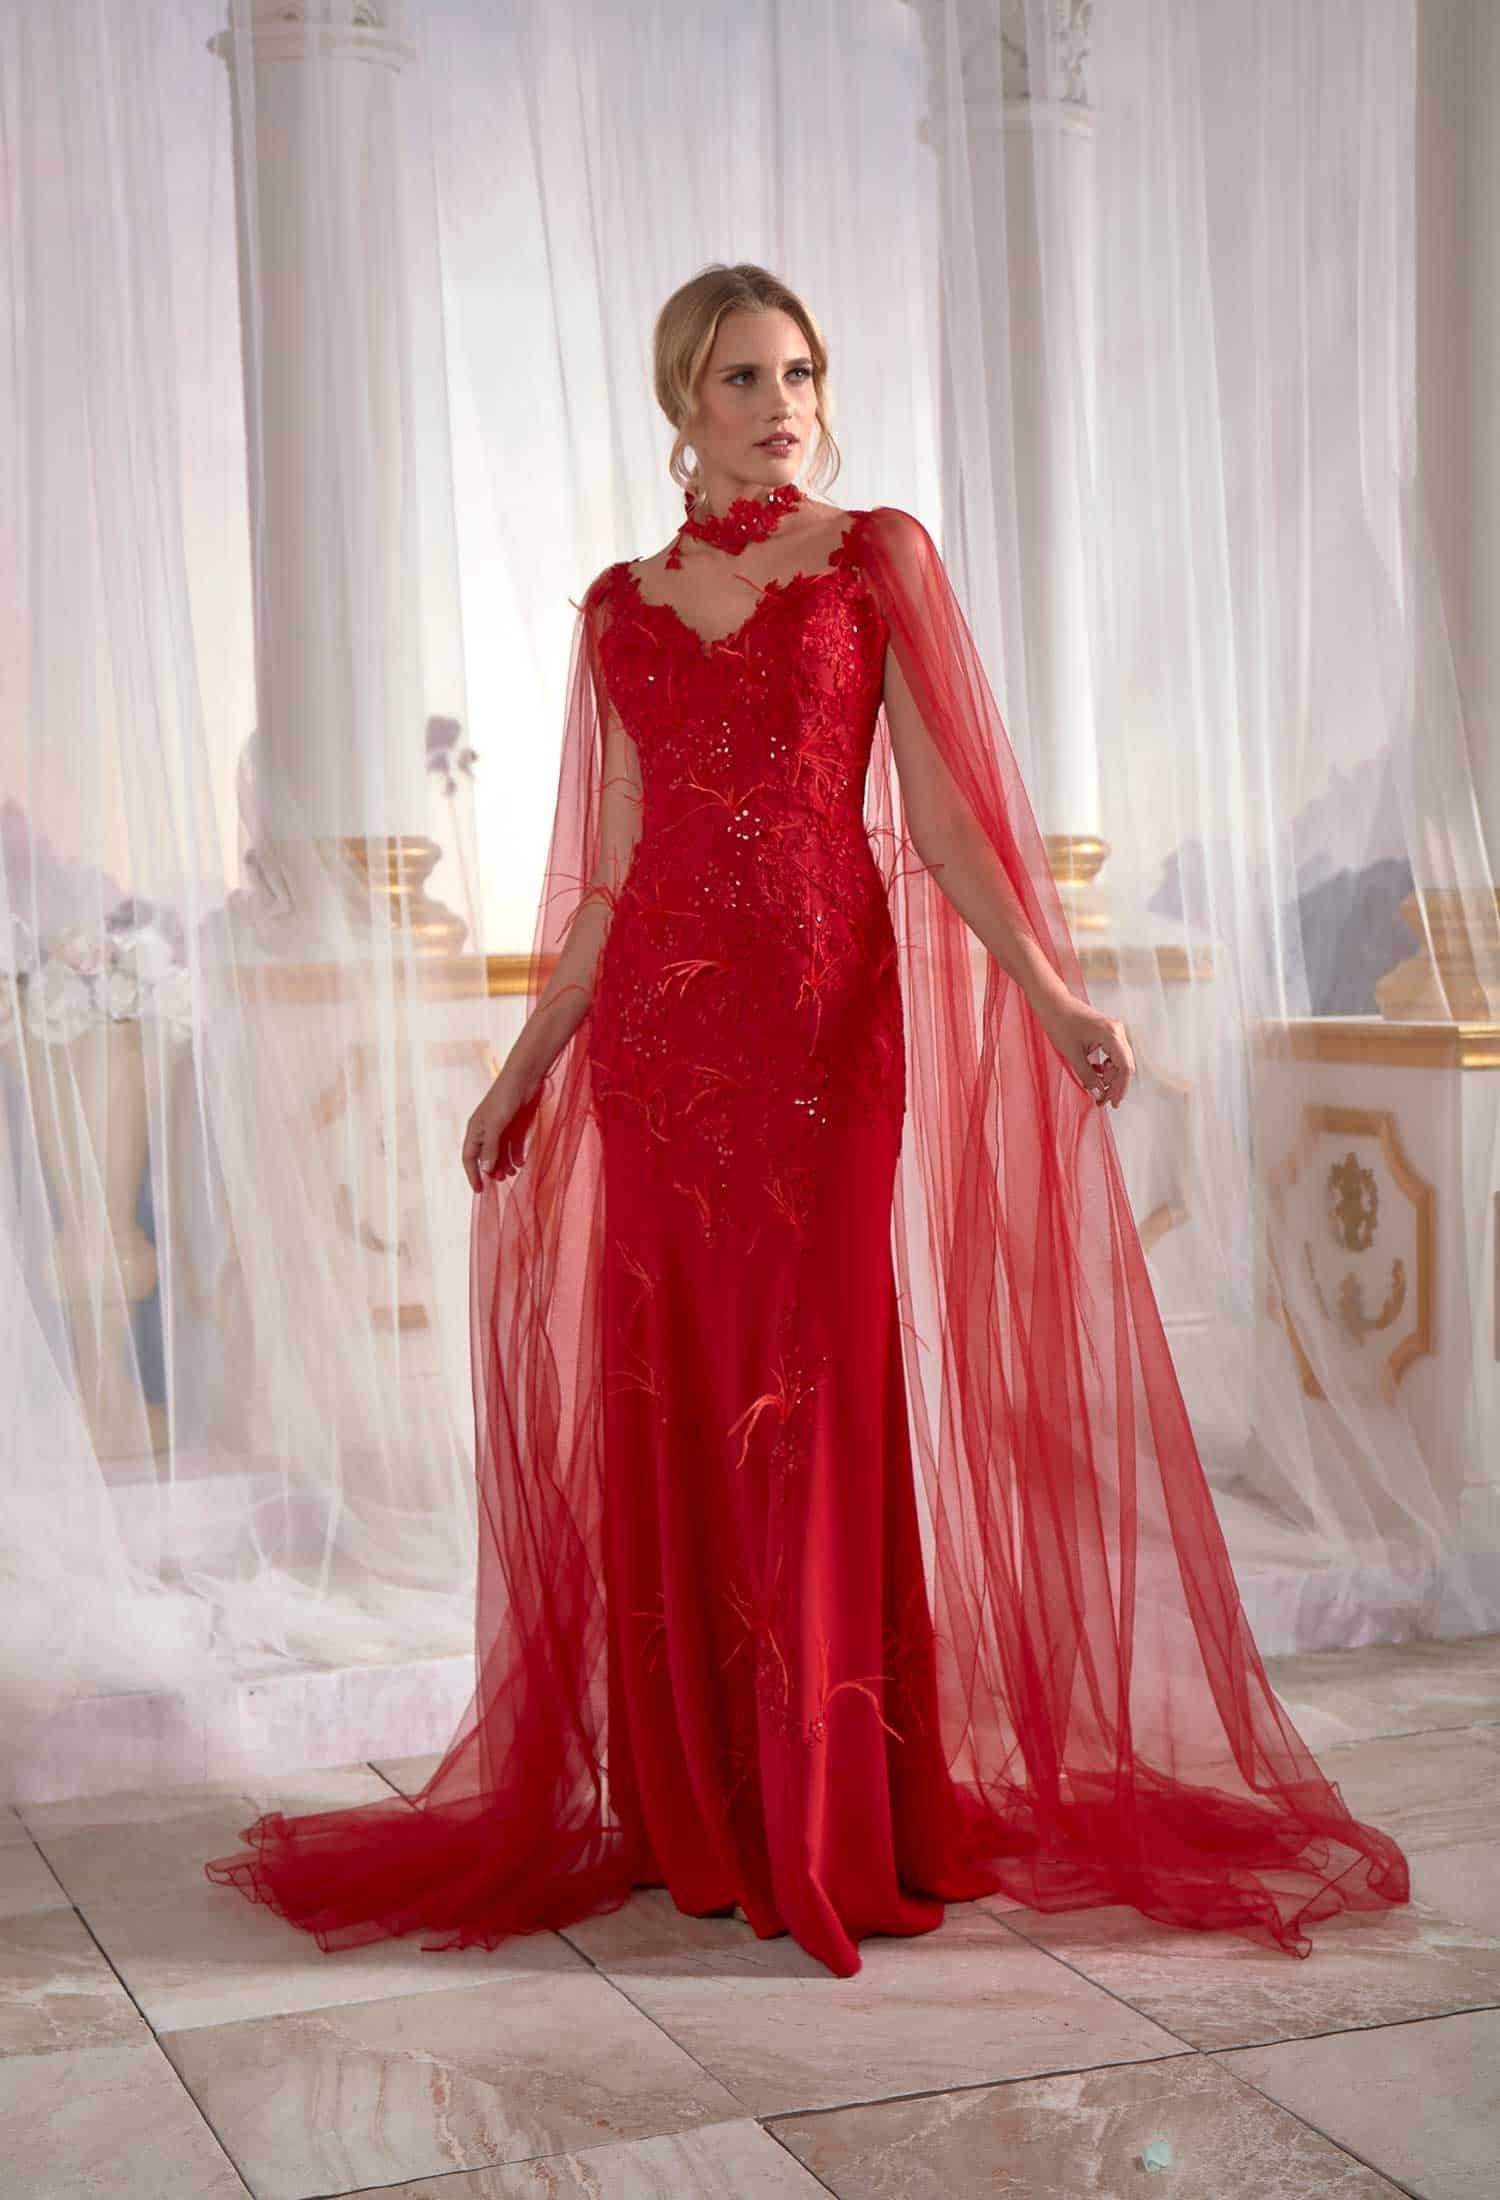 Red Prom Dress Mermaid With Flutter Flower Tulle Cape Back Tall Soft